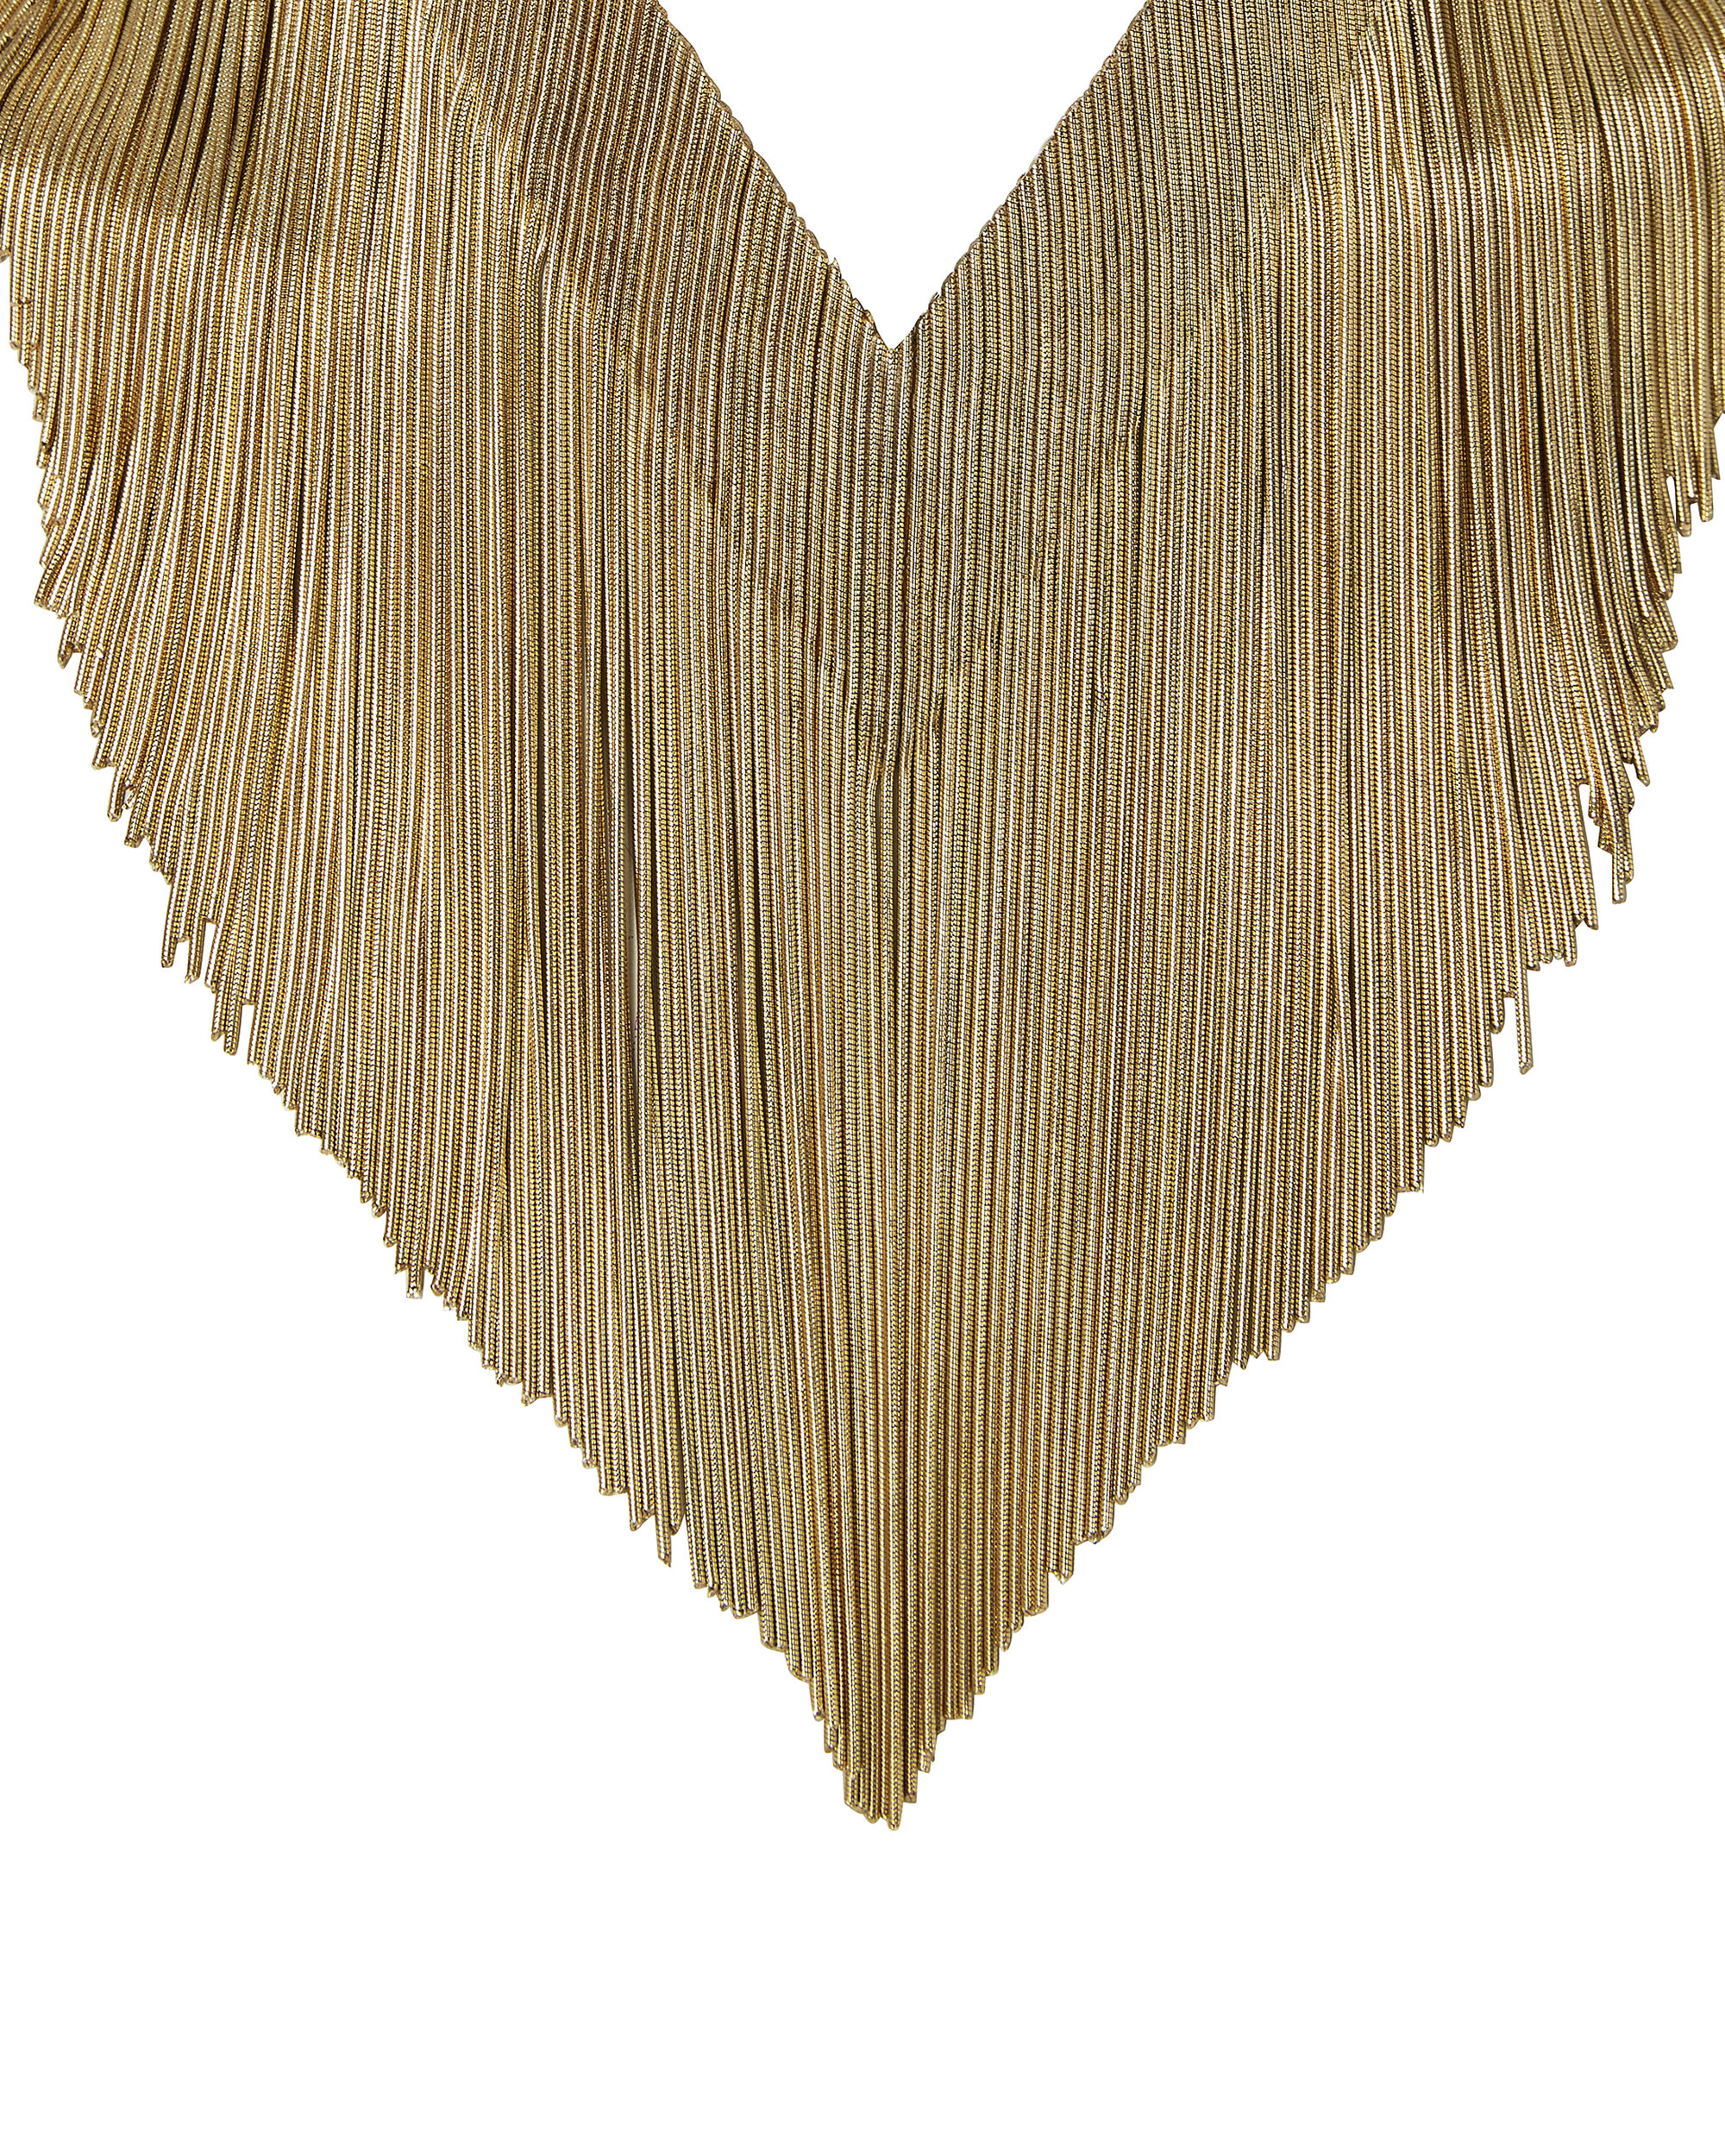 Ambra Gold Fringe Necklace       , GOLD, hi-res